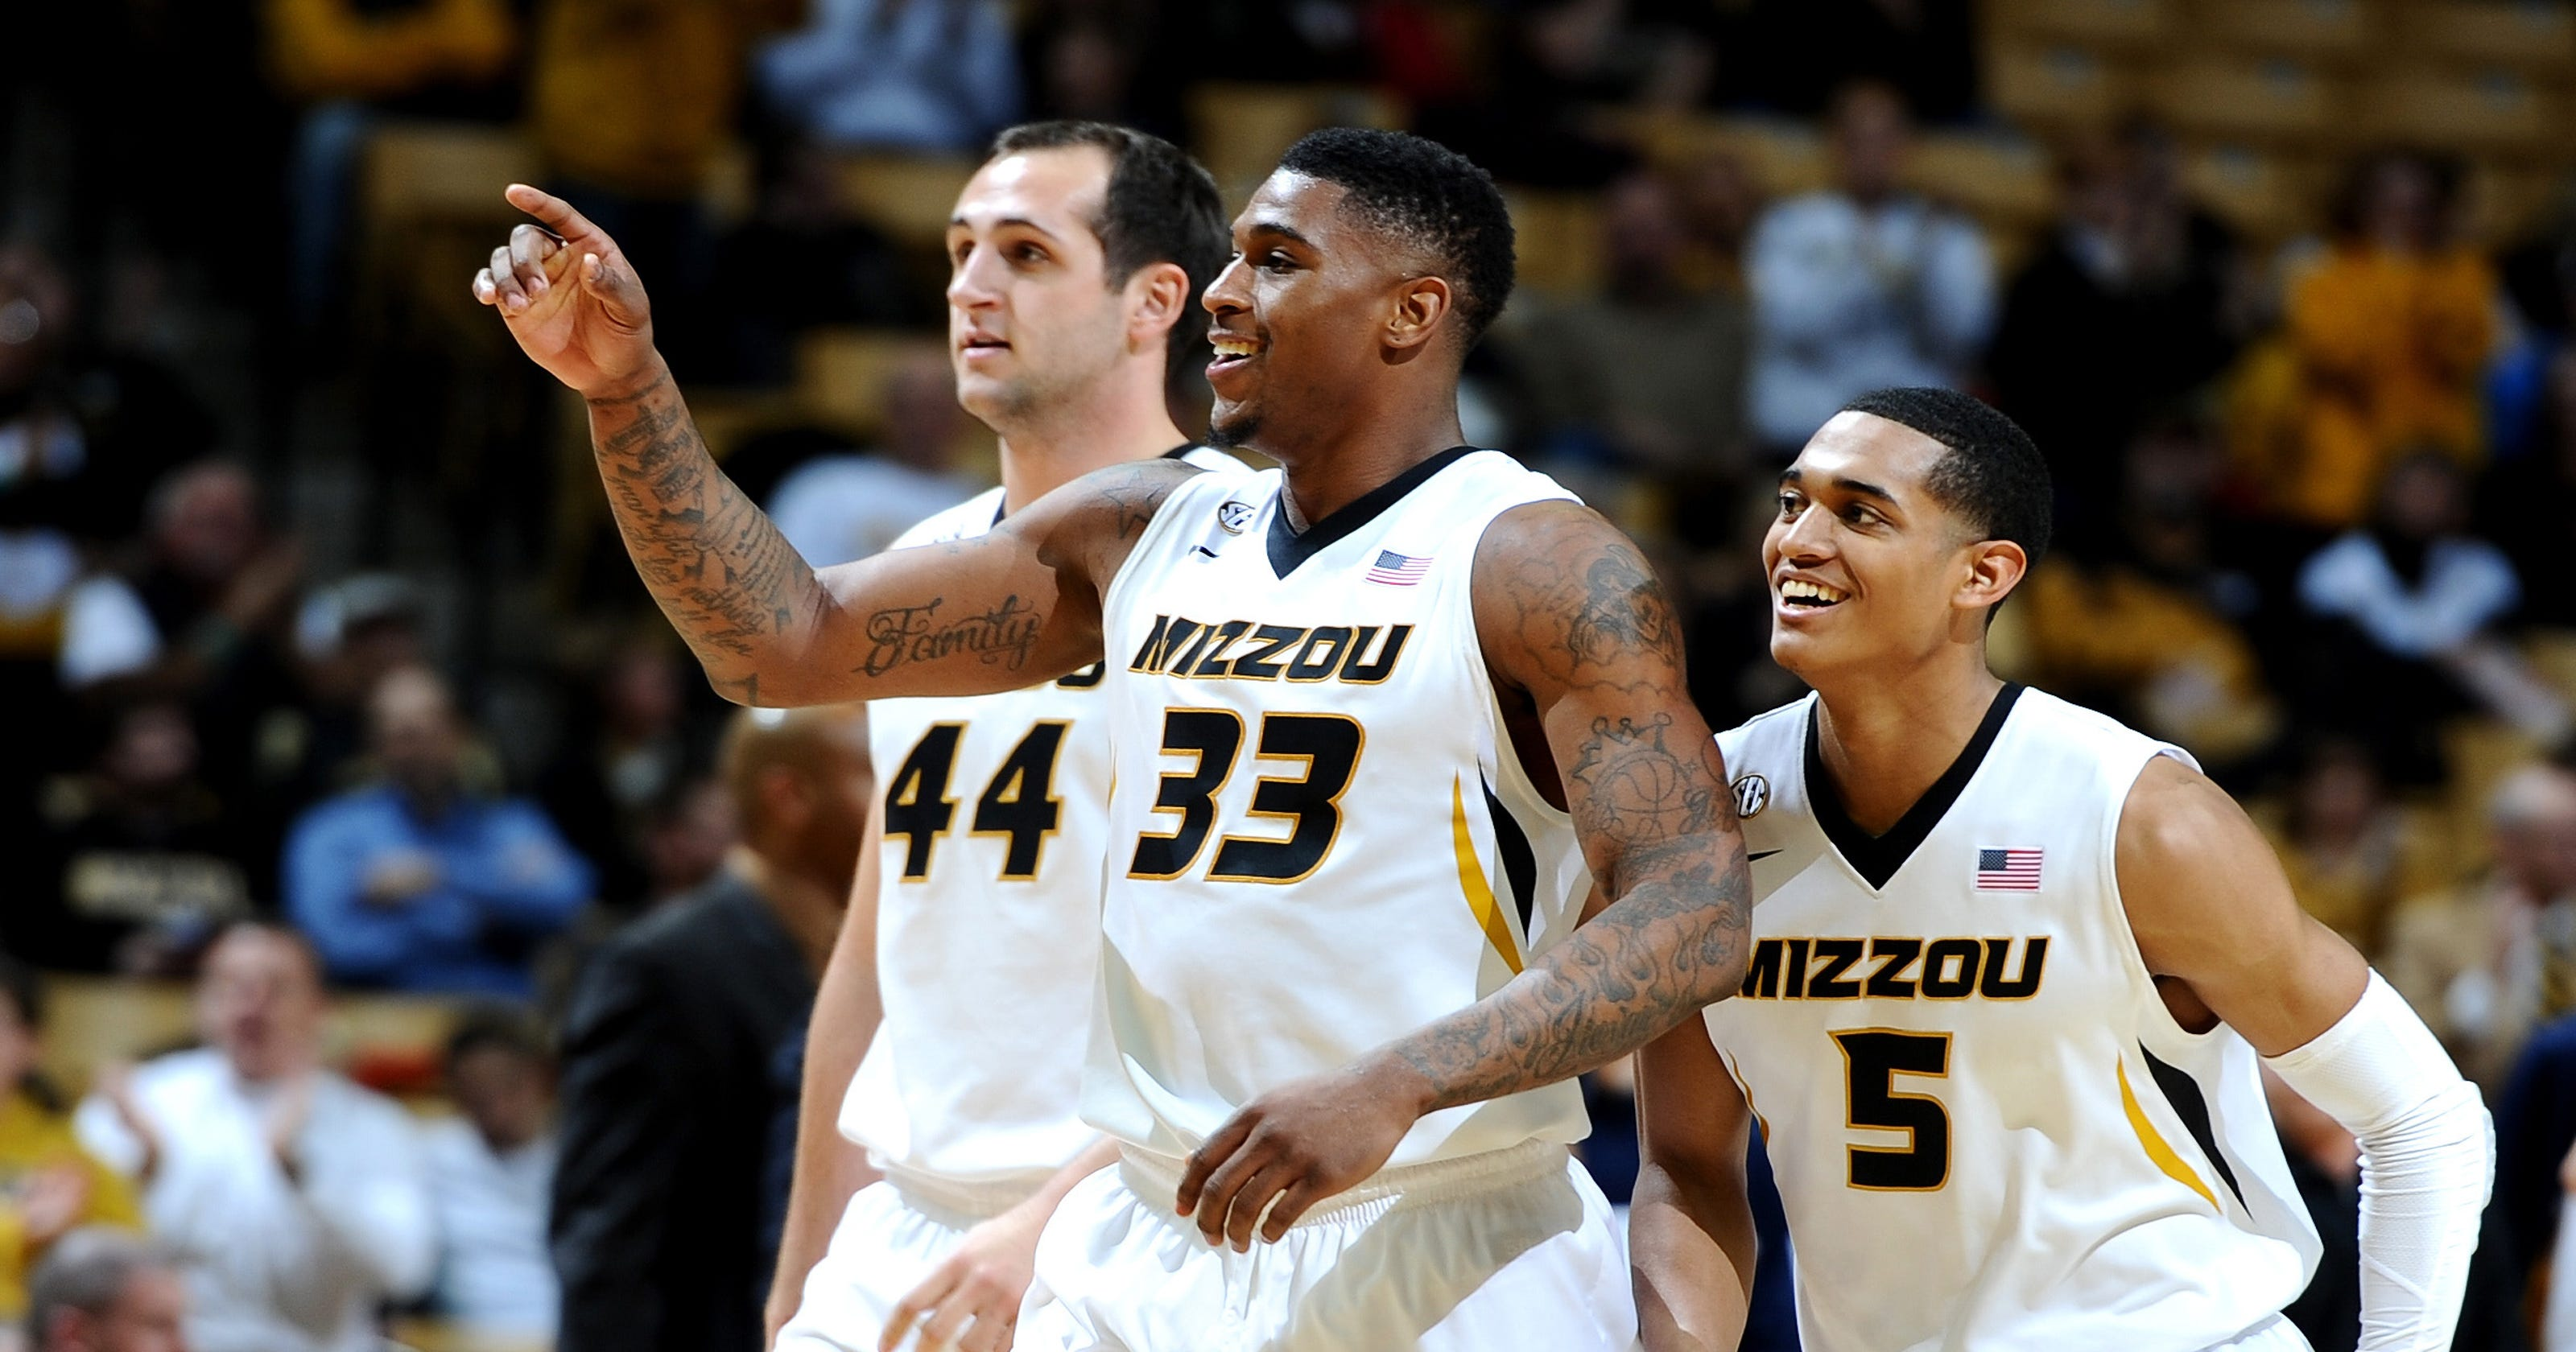 official photos c67dc 47a79 Missouri tops West Virginia in Big 12/SEC Challenge